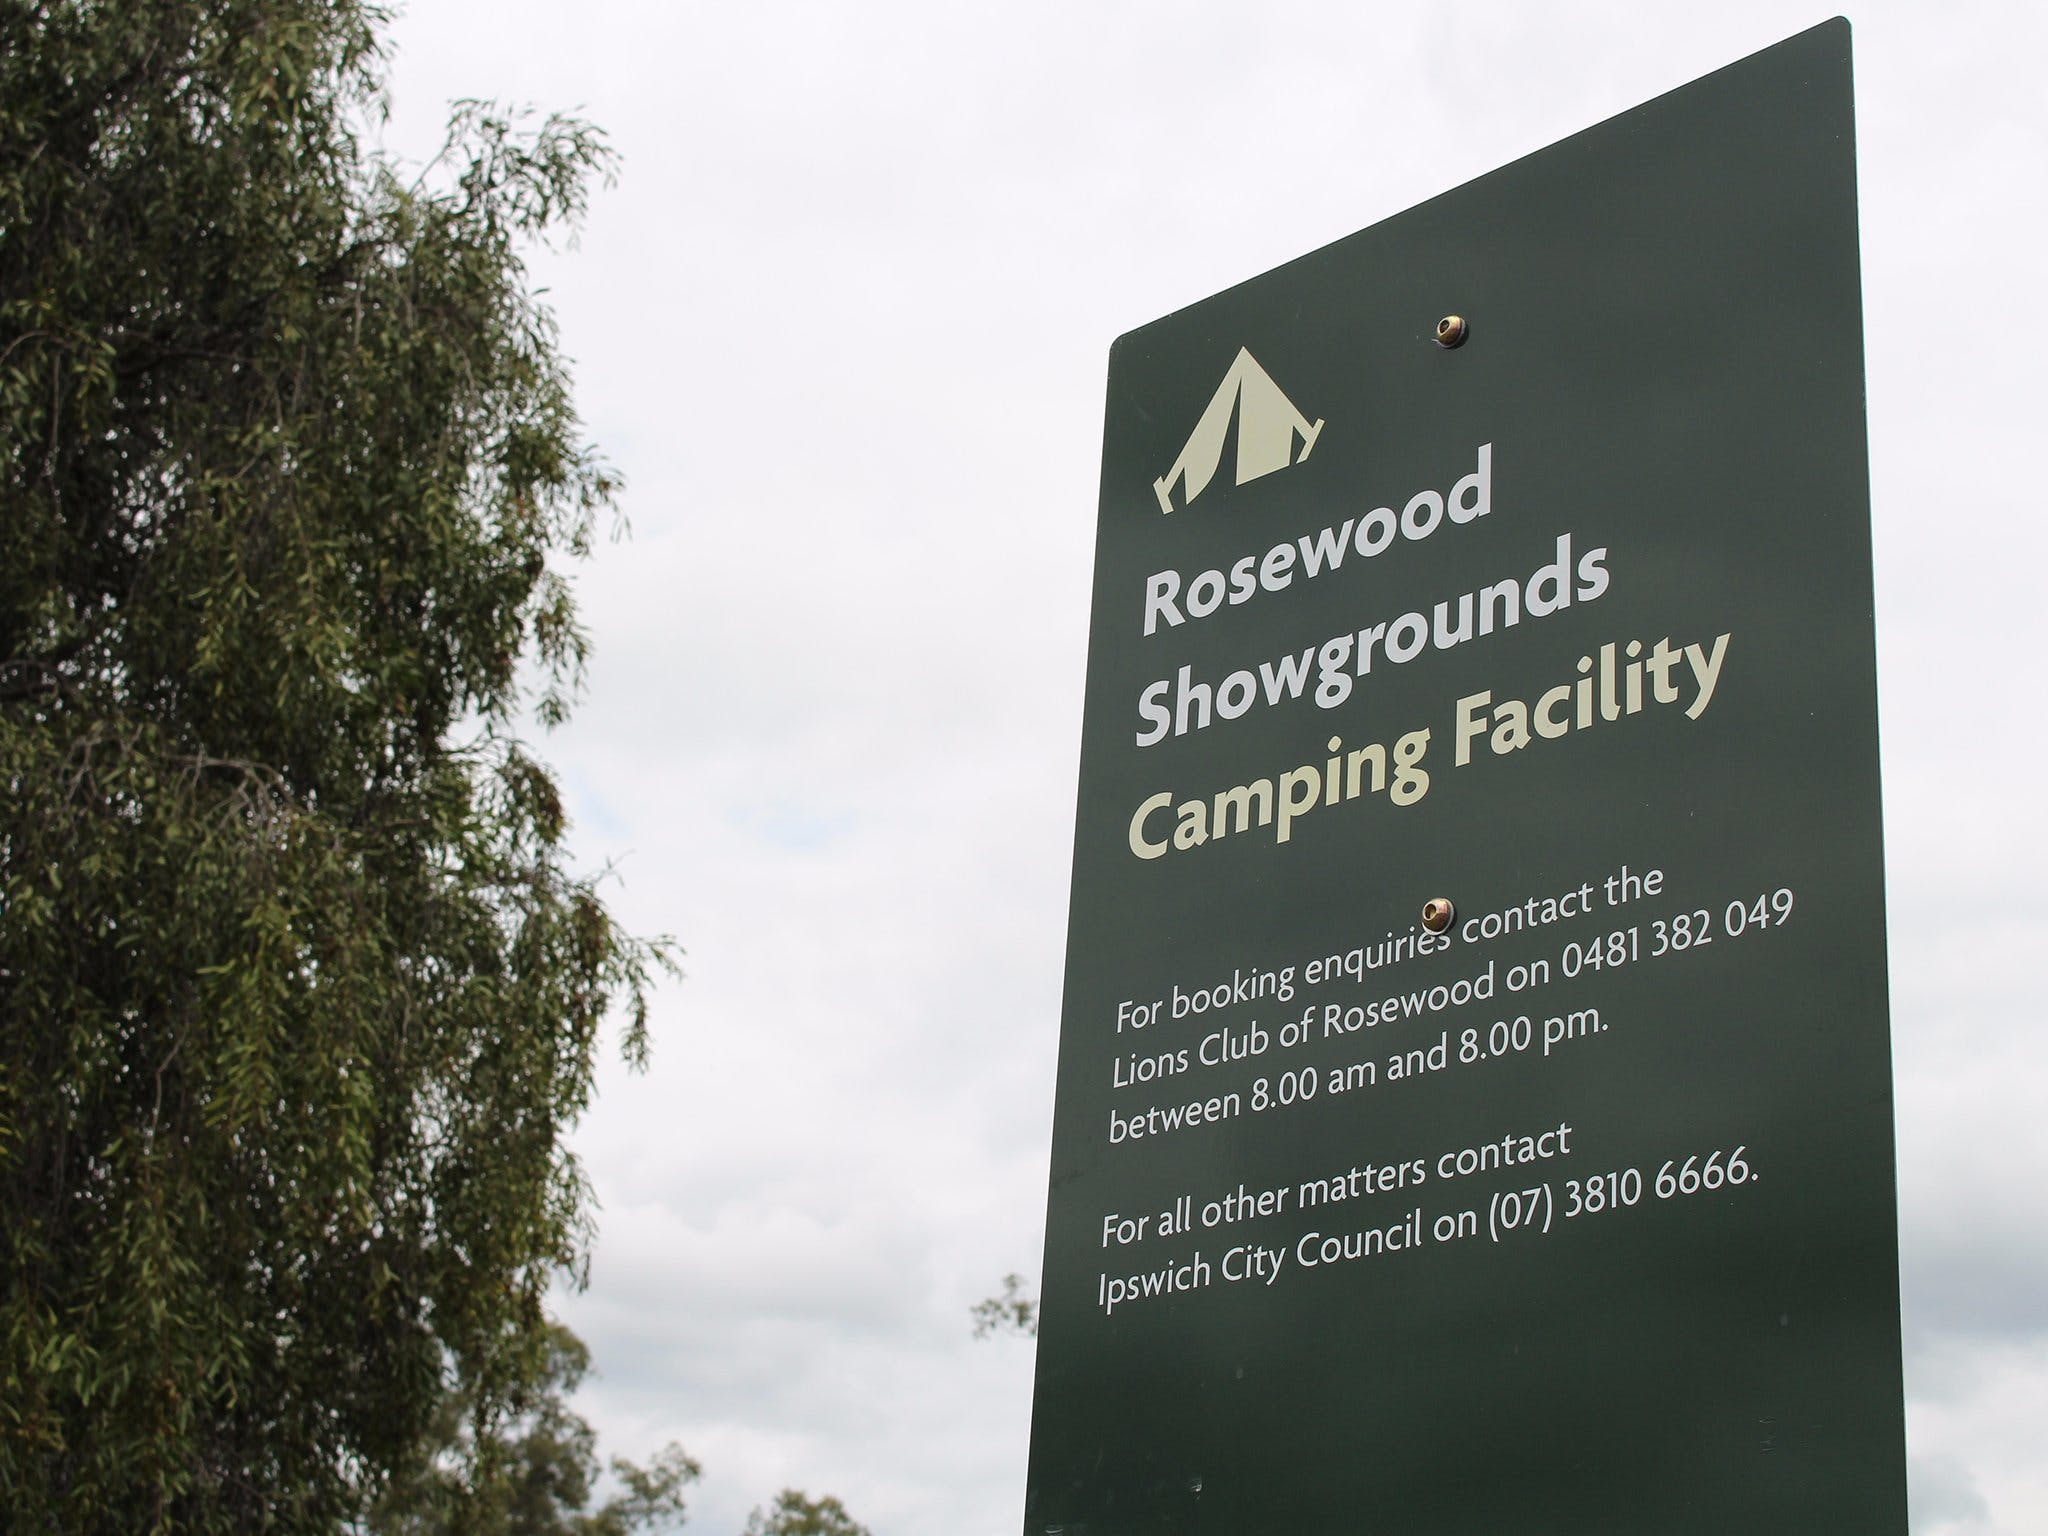 Rosewood Showgrounds Camping Facility - Phillip Island Accommodation